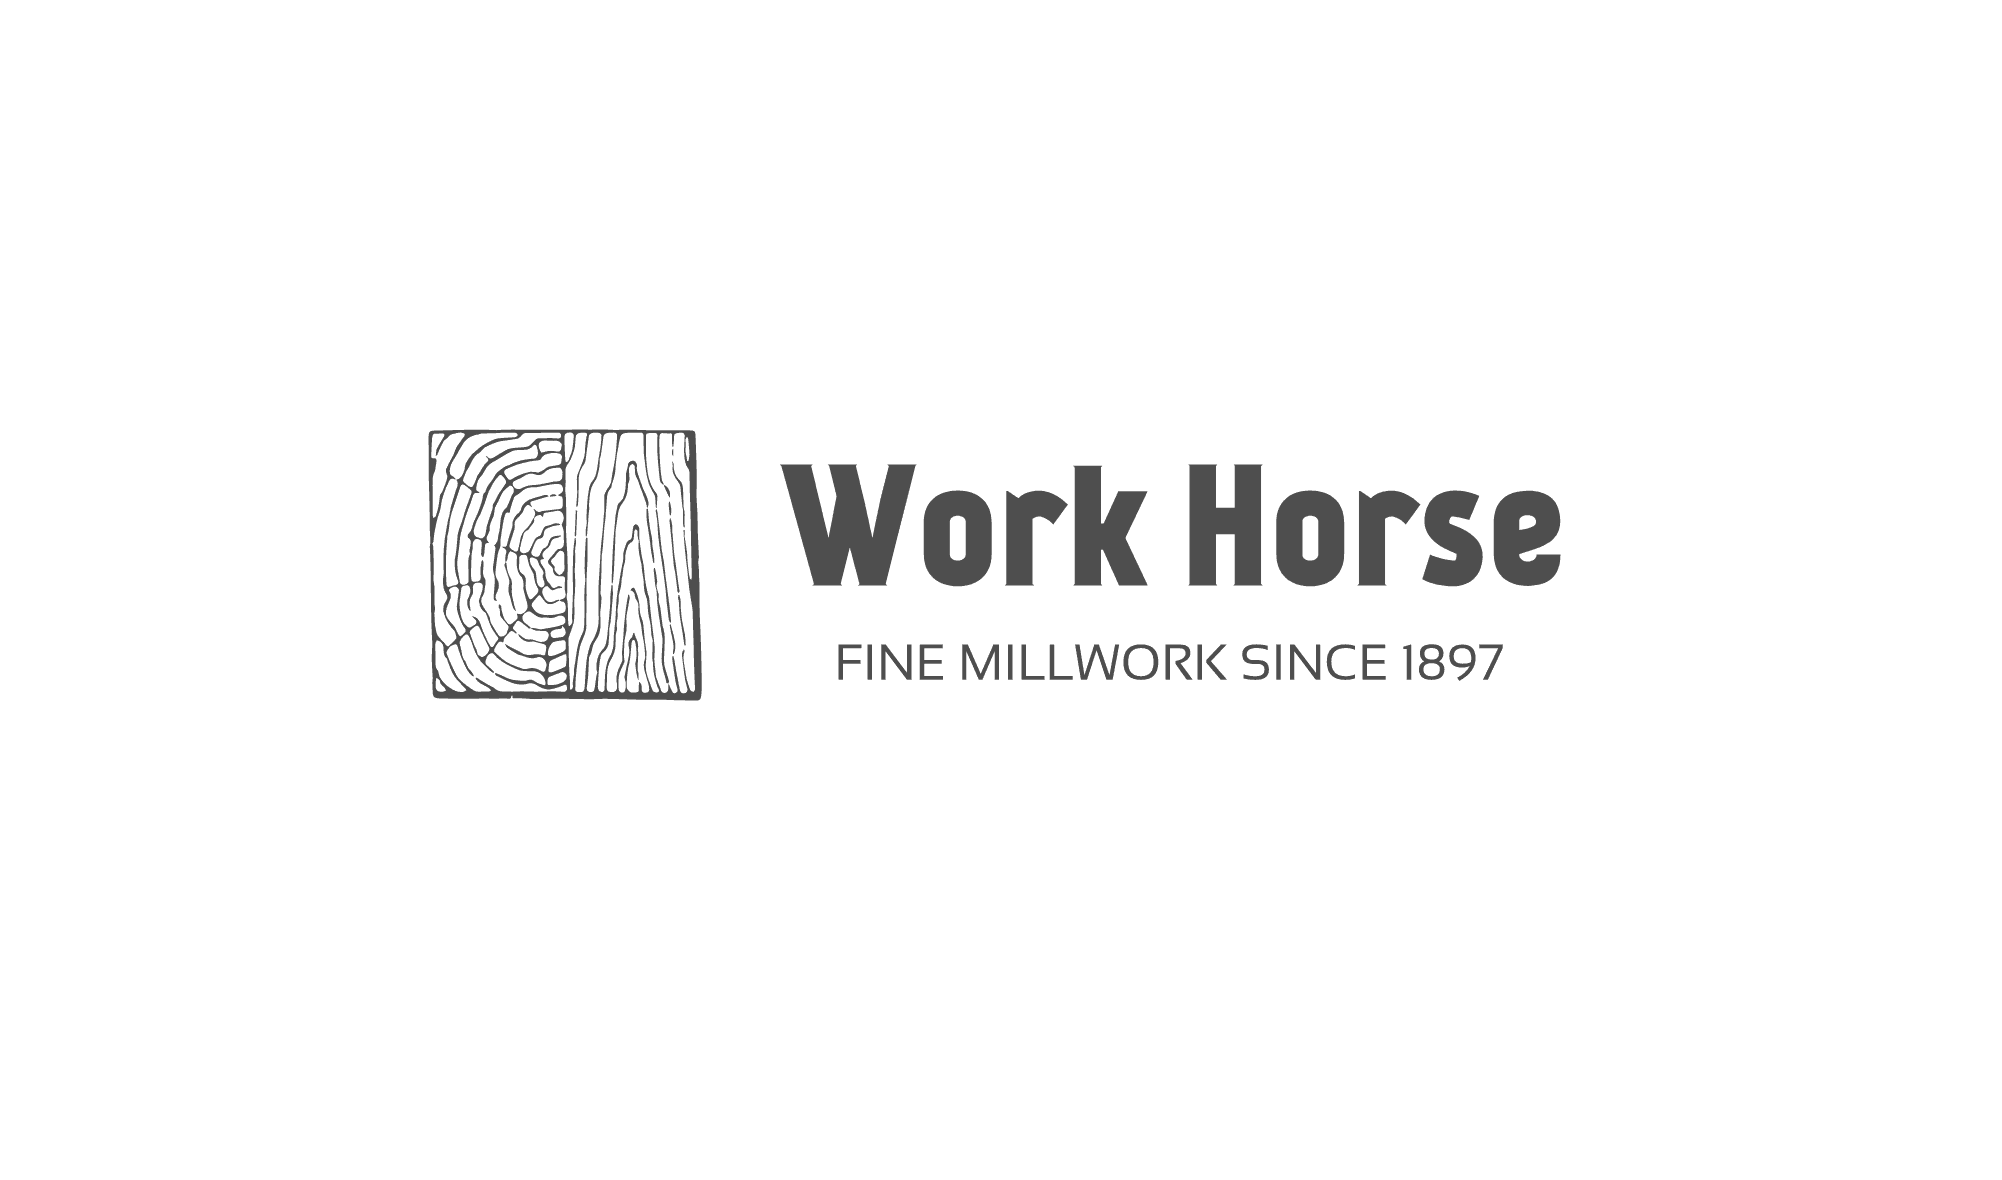 Sample woodworking logo made with Looka - Work Horse